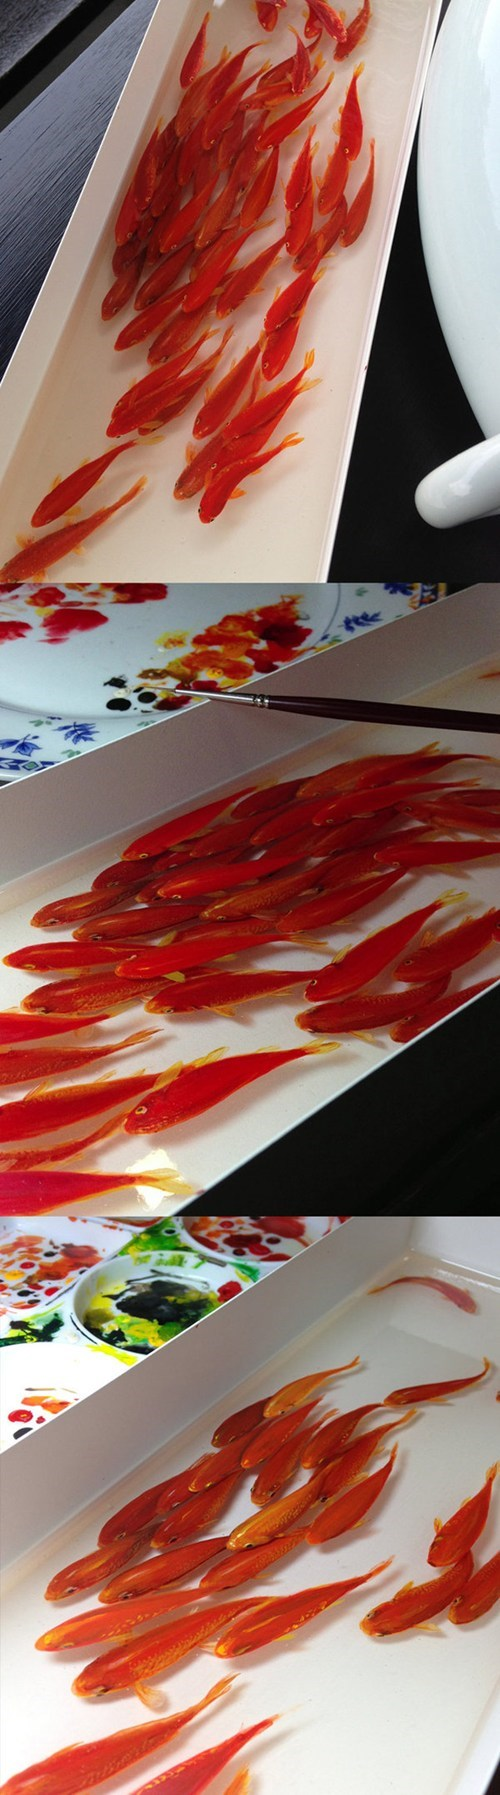 The Resin Art of Keng Lye Will Blow Your Mind